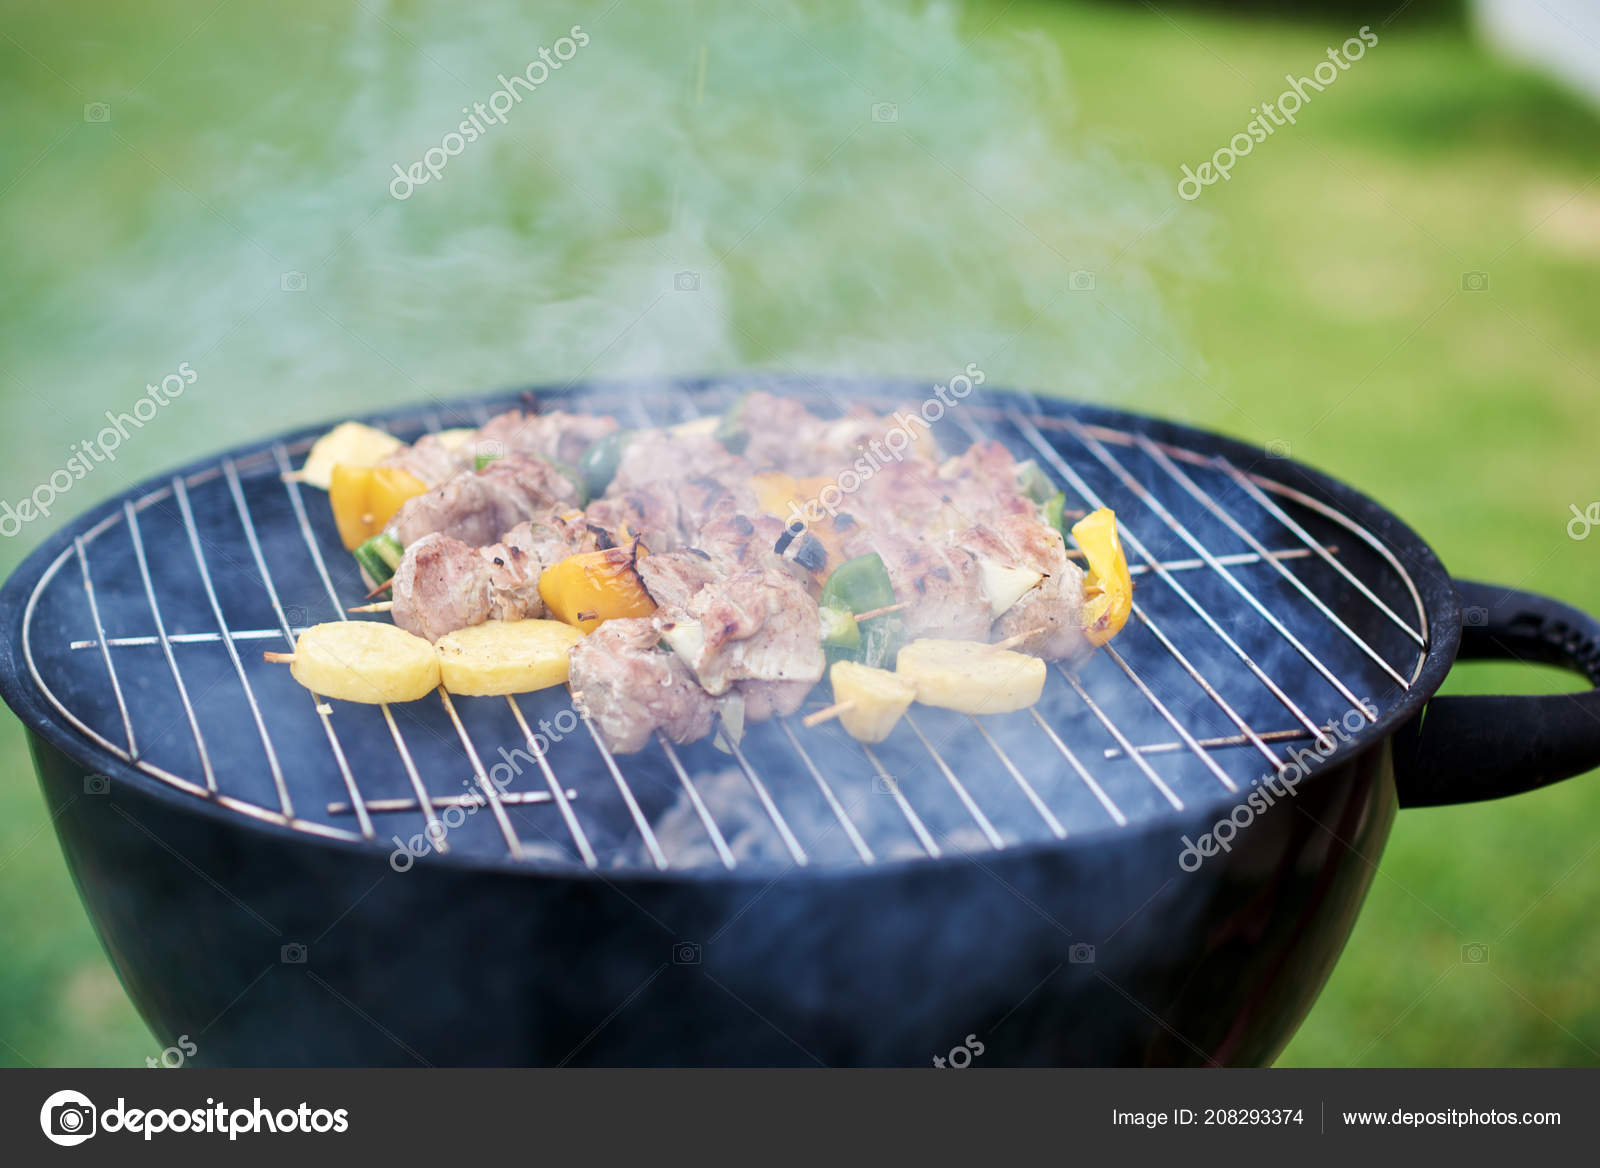 Coal Bbq Bbq Kebab Cooking Coal Grill Meat Skewers Peppers Potatoes